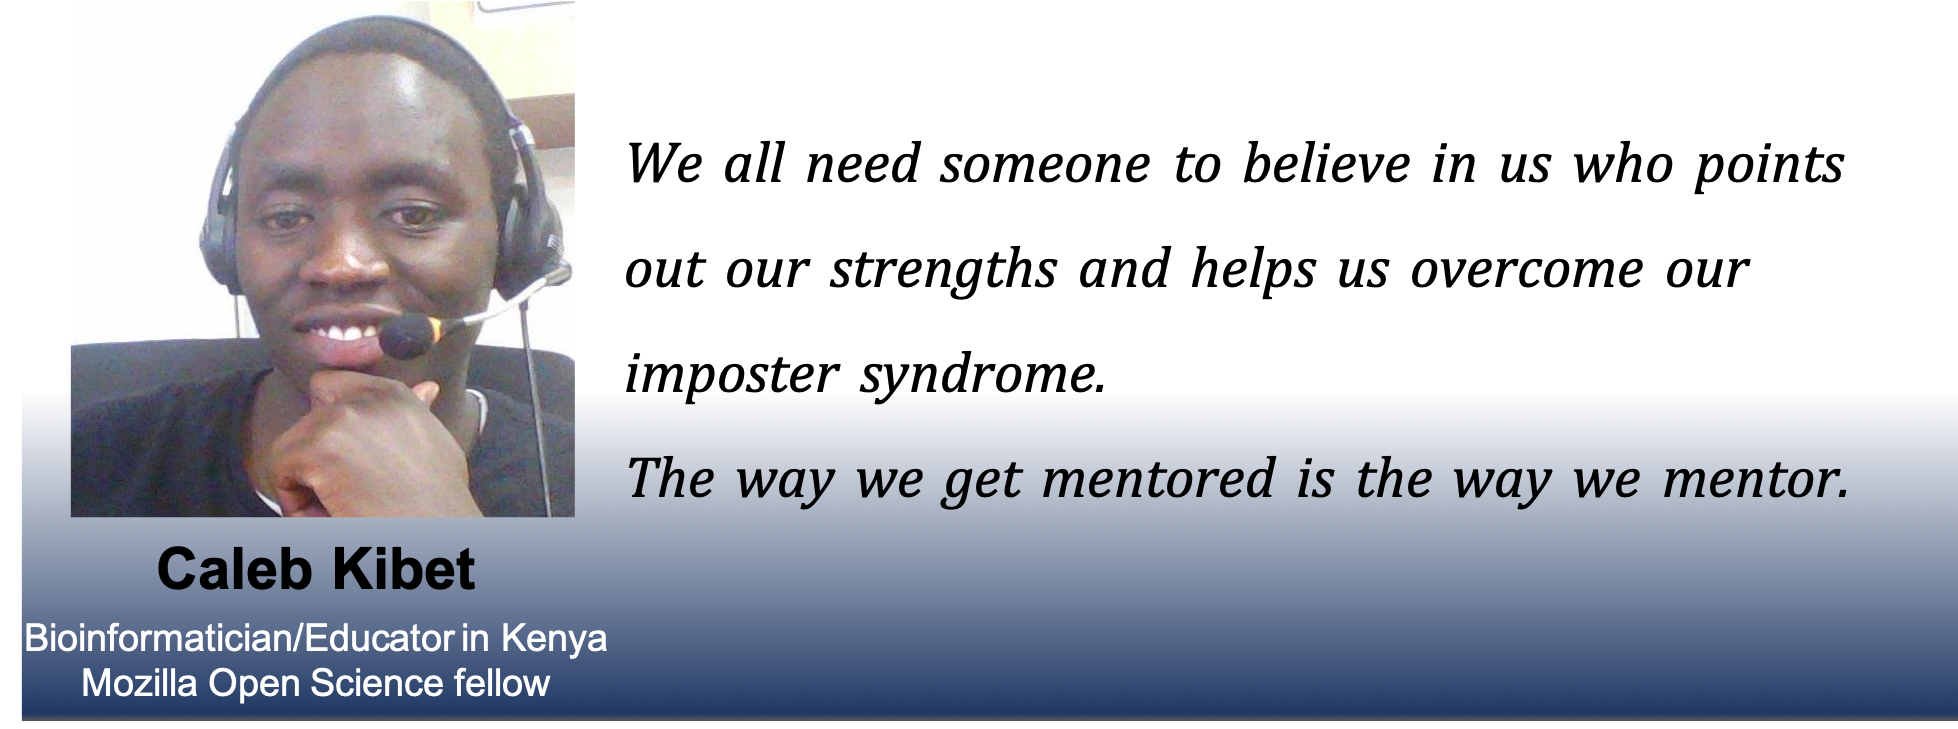 Picture of Caleb with the caption: We all need someone to believe in us who points out our strengths and helps us overcome out impostor syndrome. The way we get mentored is the way we mentor.